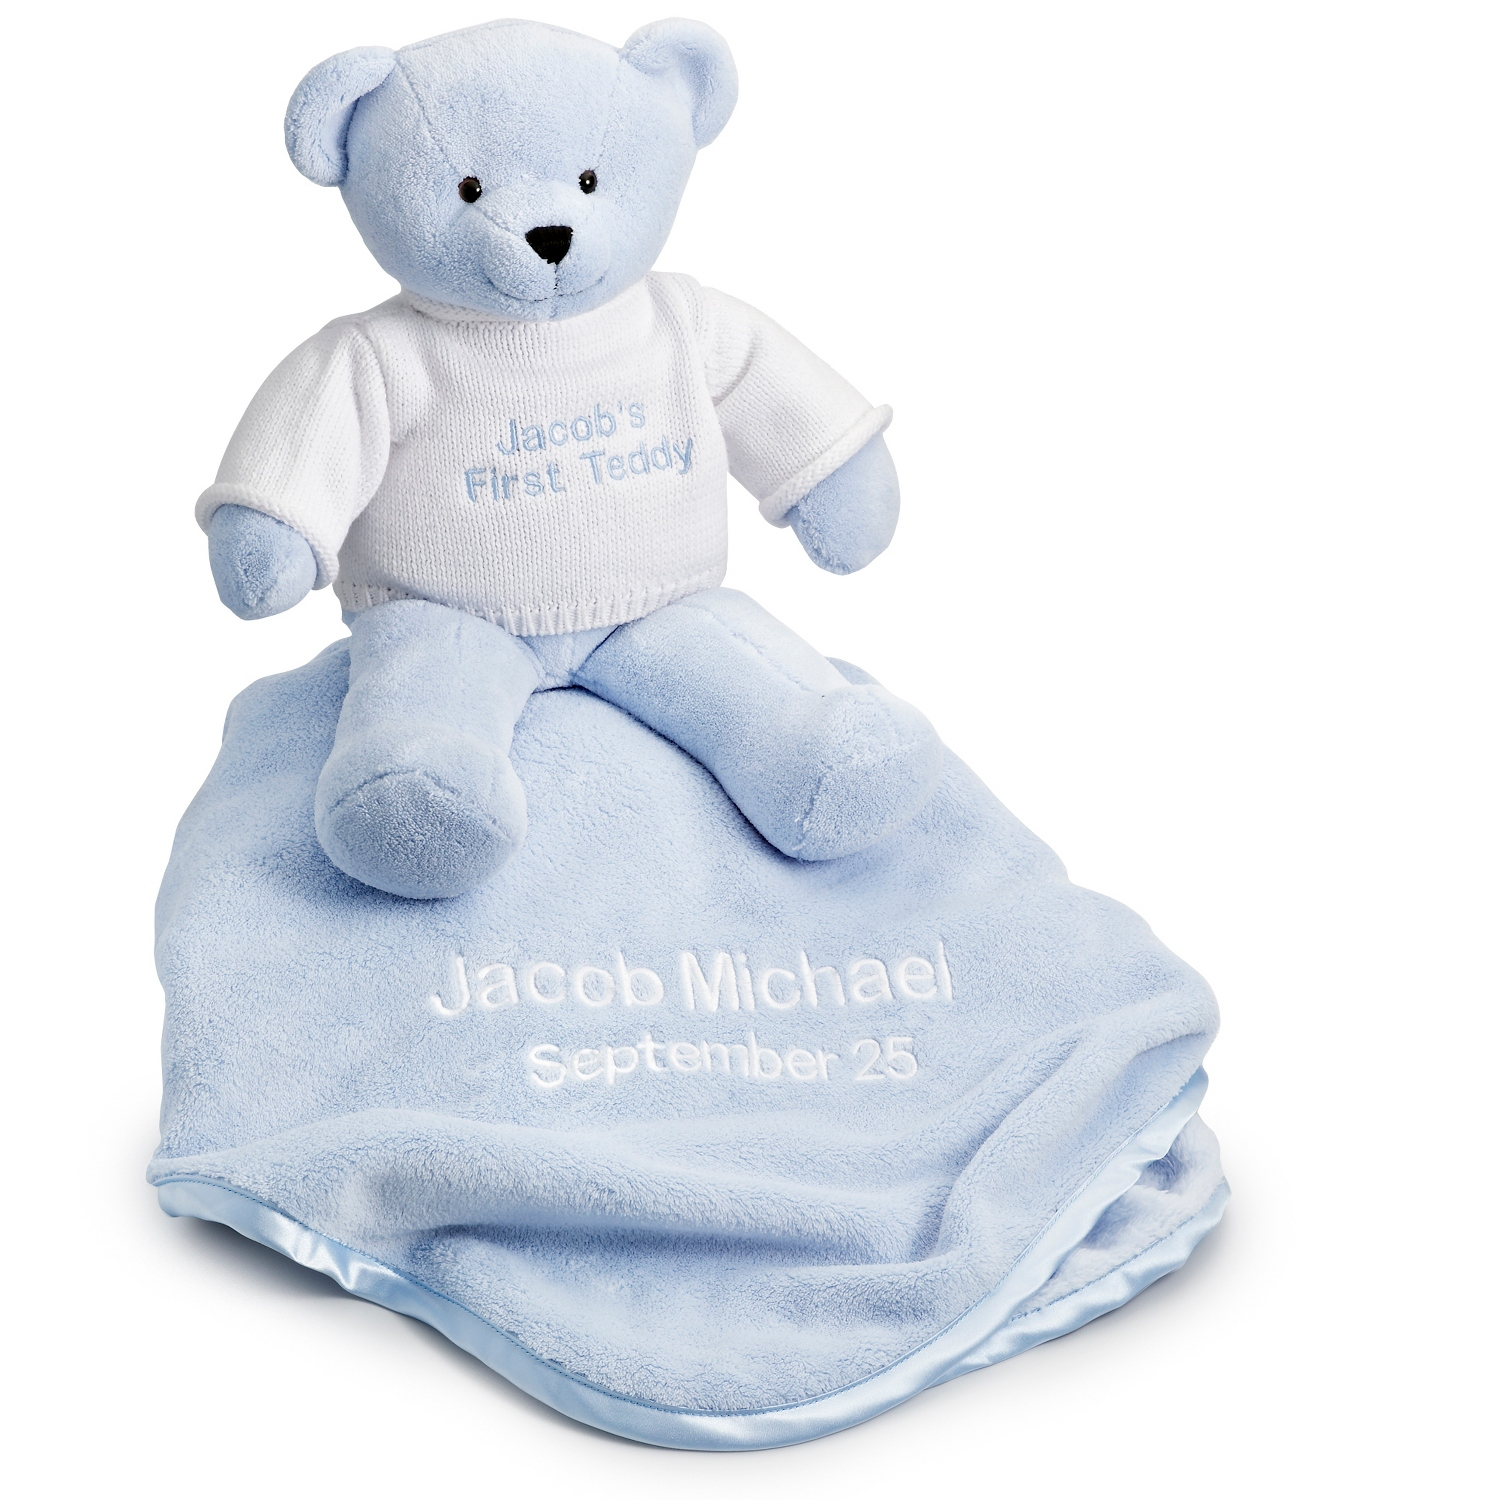 Personalized gifts for babies at things remembered blue teddy bear with blanket negle Choice Image